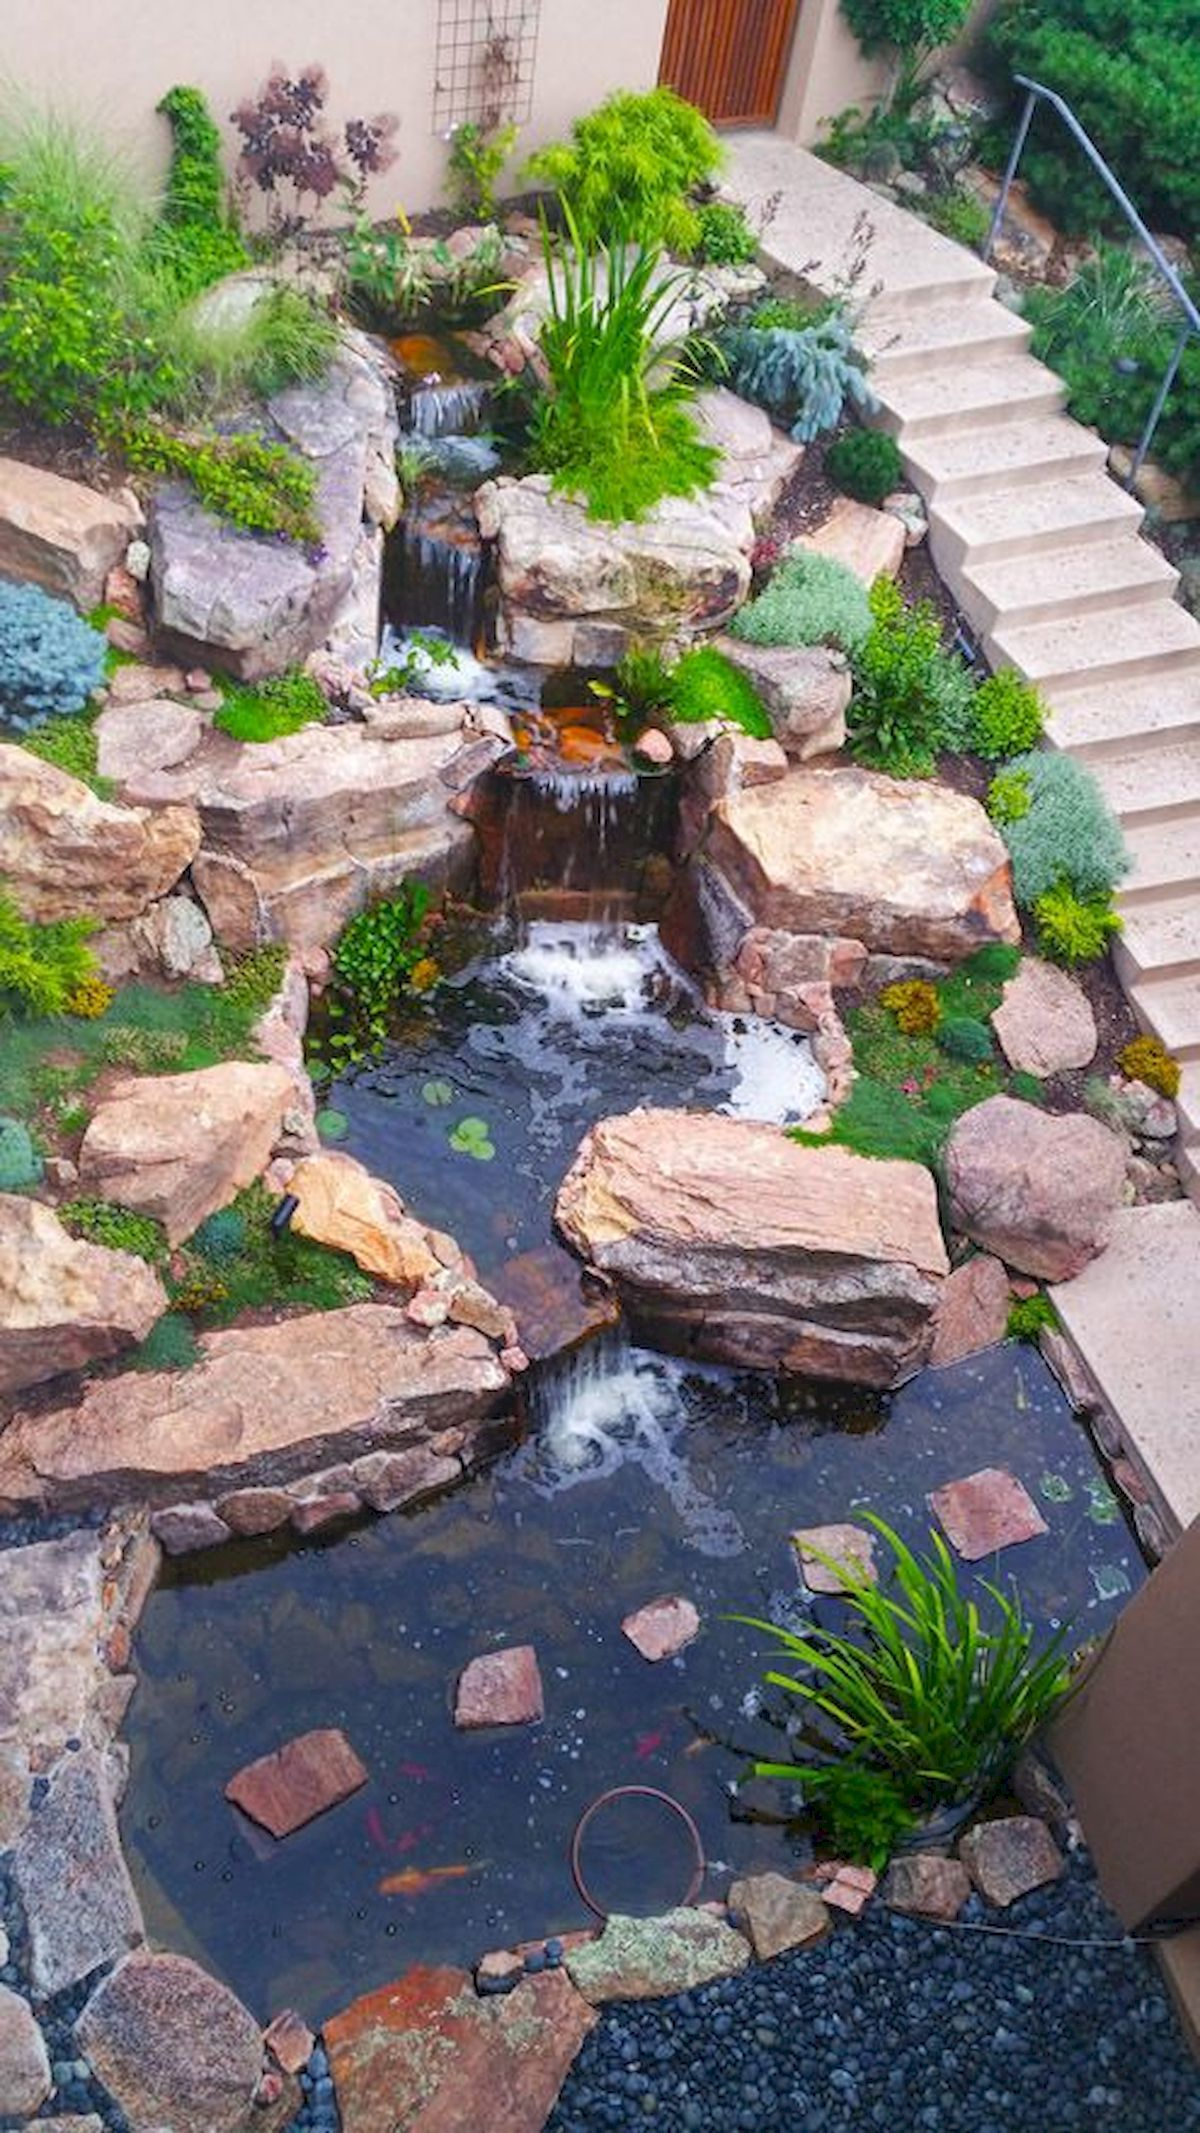 25 Stunning Backyard Ponds Ideas With Waterfalls Landscaping And within 14 Clever Ideas How to Improve Backyard Pond Ideas With Waterfall